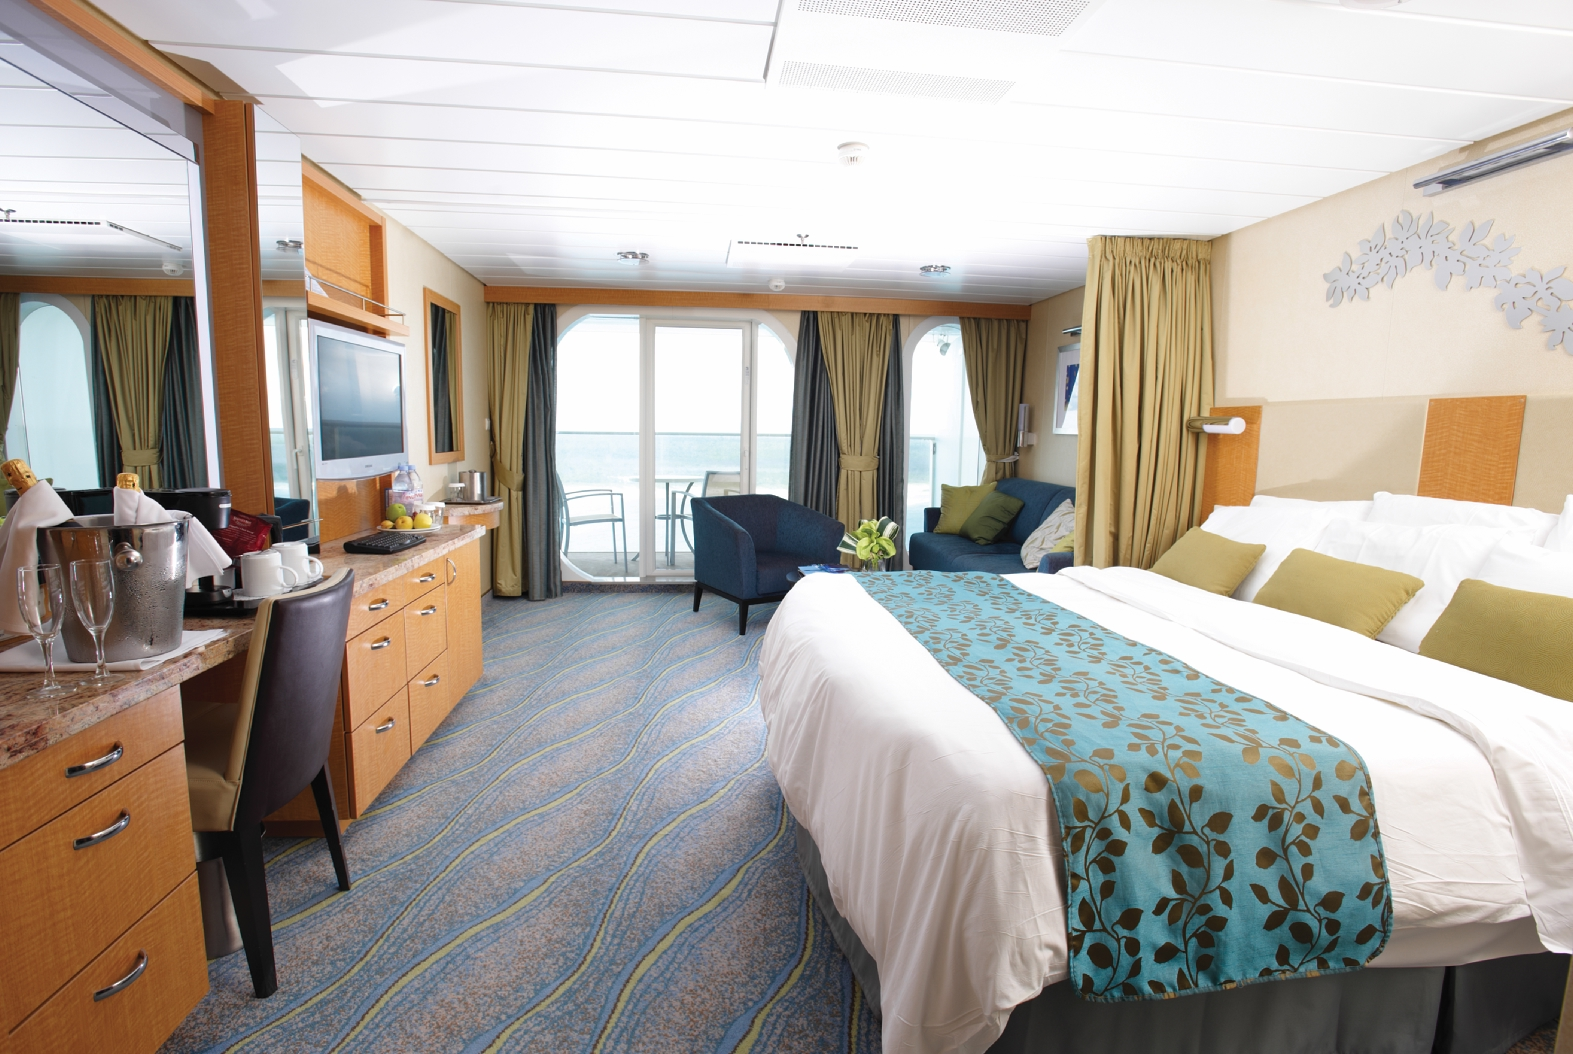 Royal Caribbean International Oasis of the seas accommodation Balcony cabin.jpg